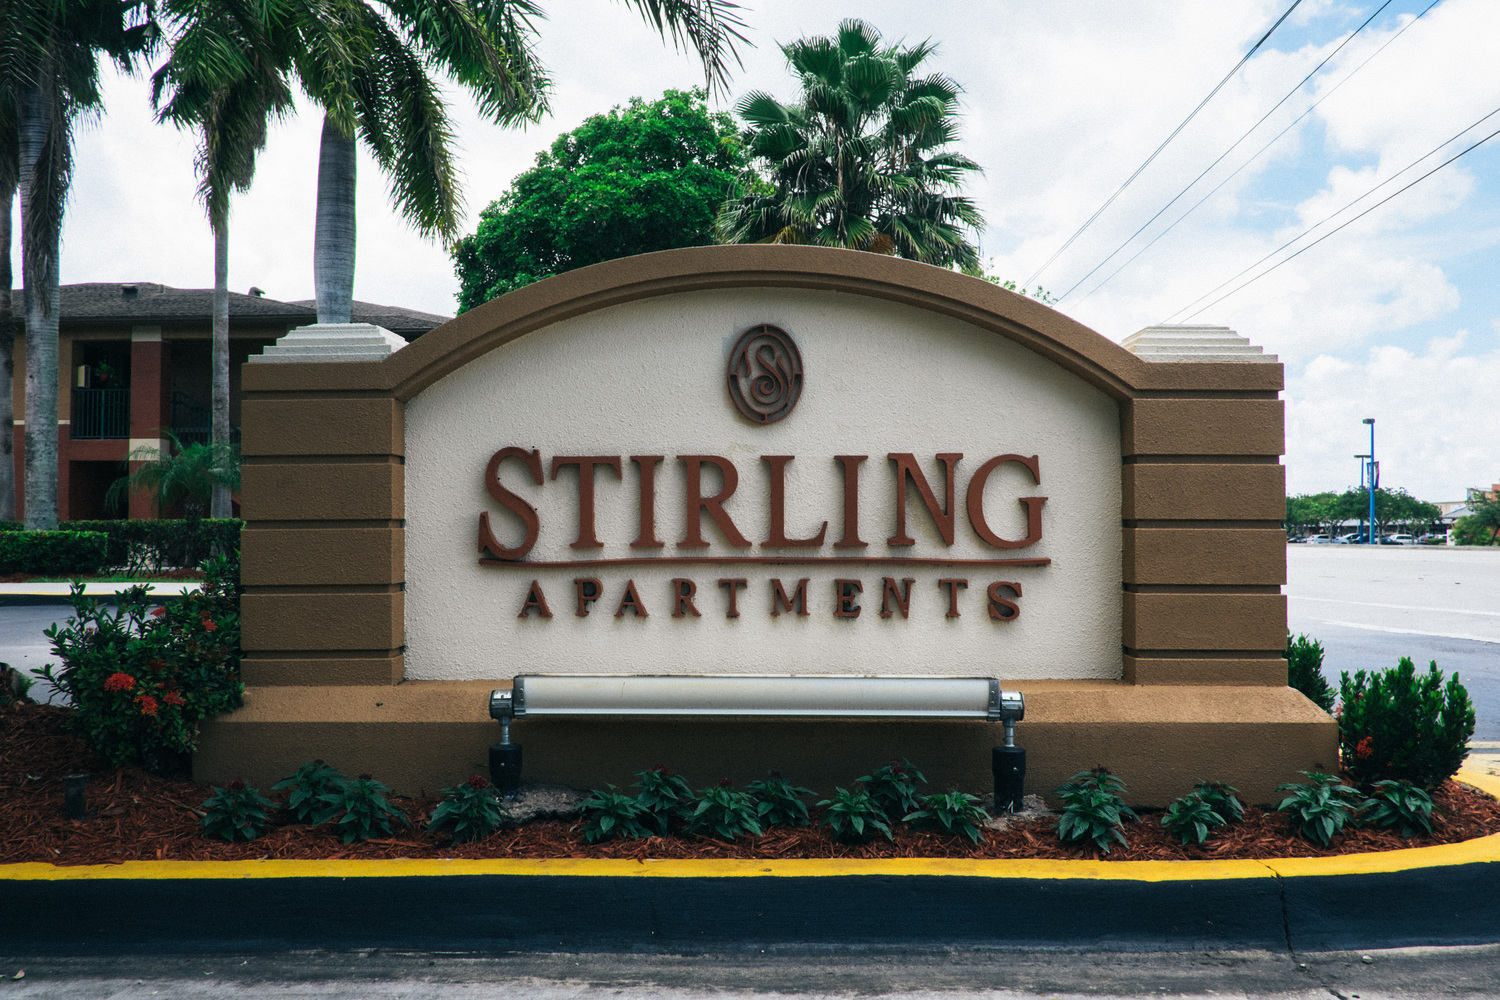 Image of Stirling Apartments in Davie, Florida